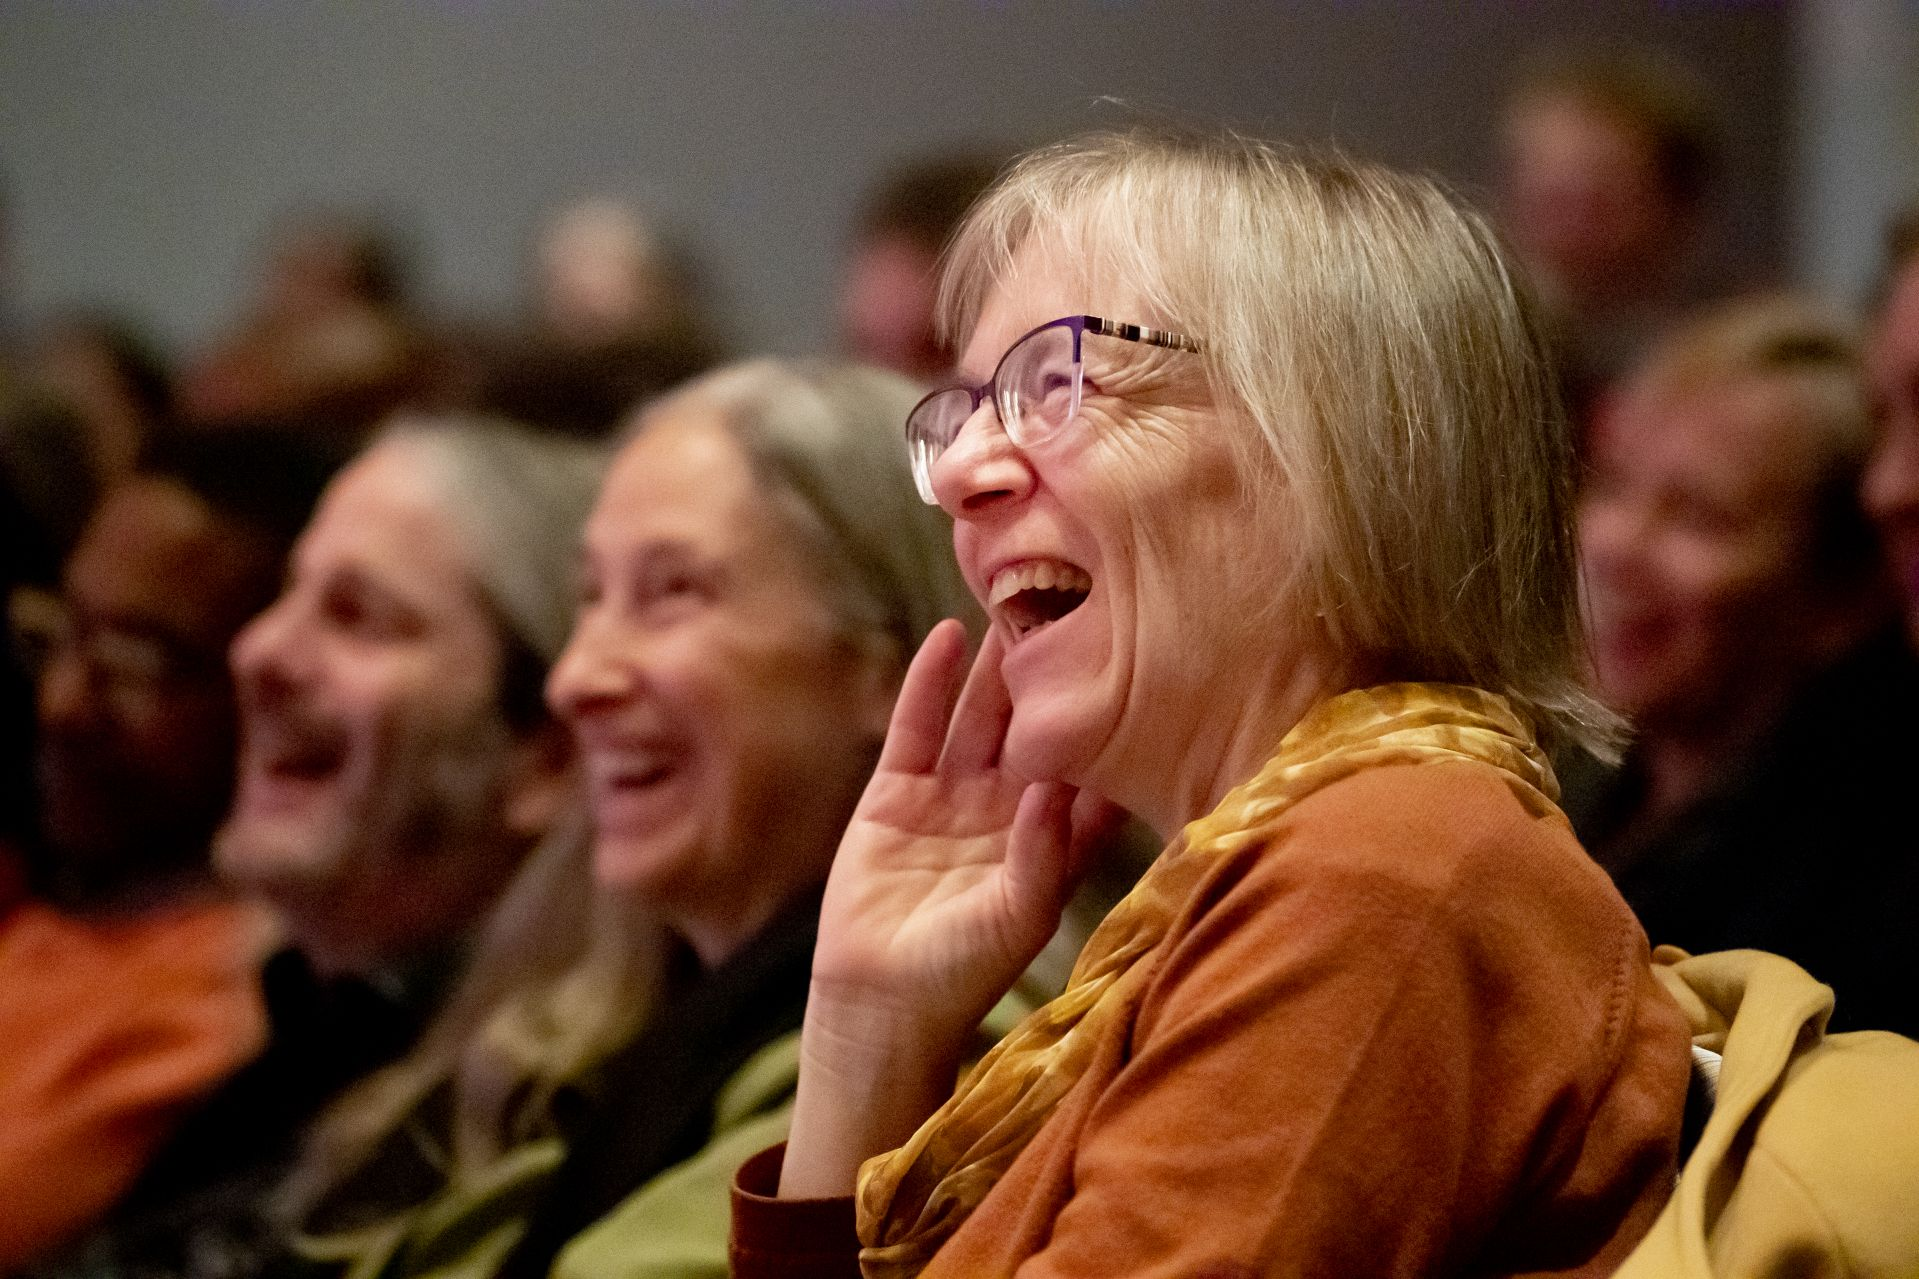 Ross's reading prompted lots of laughter. (Phyllis Graber Jensen/Bates College)